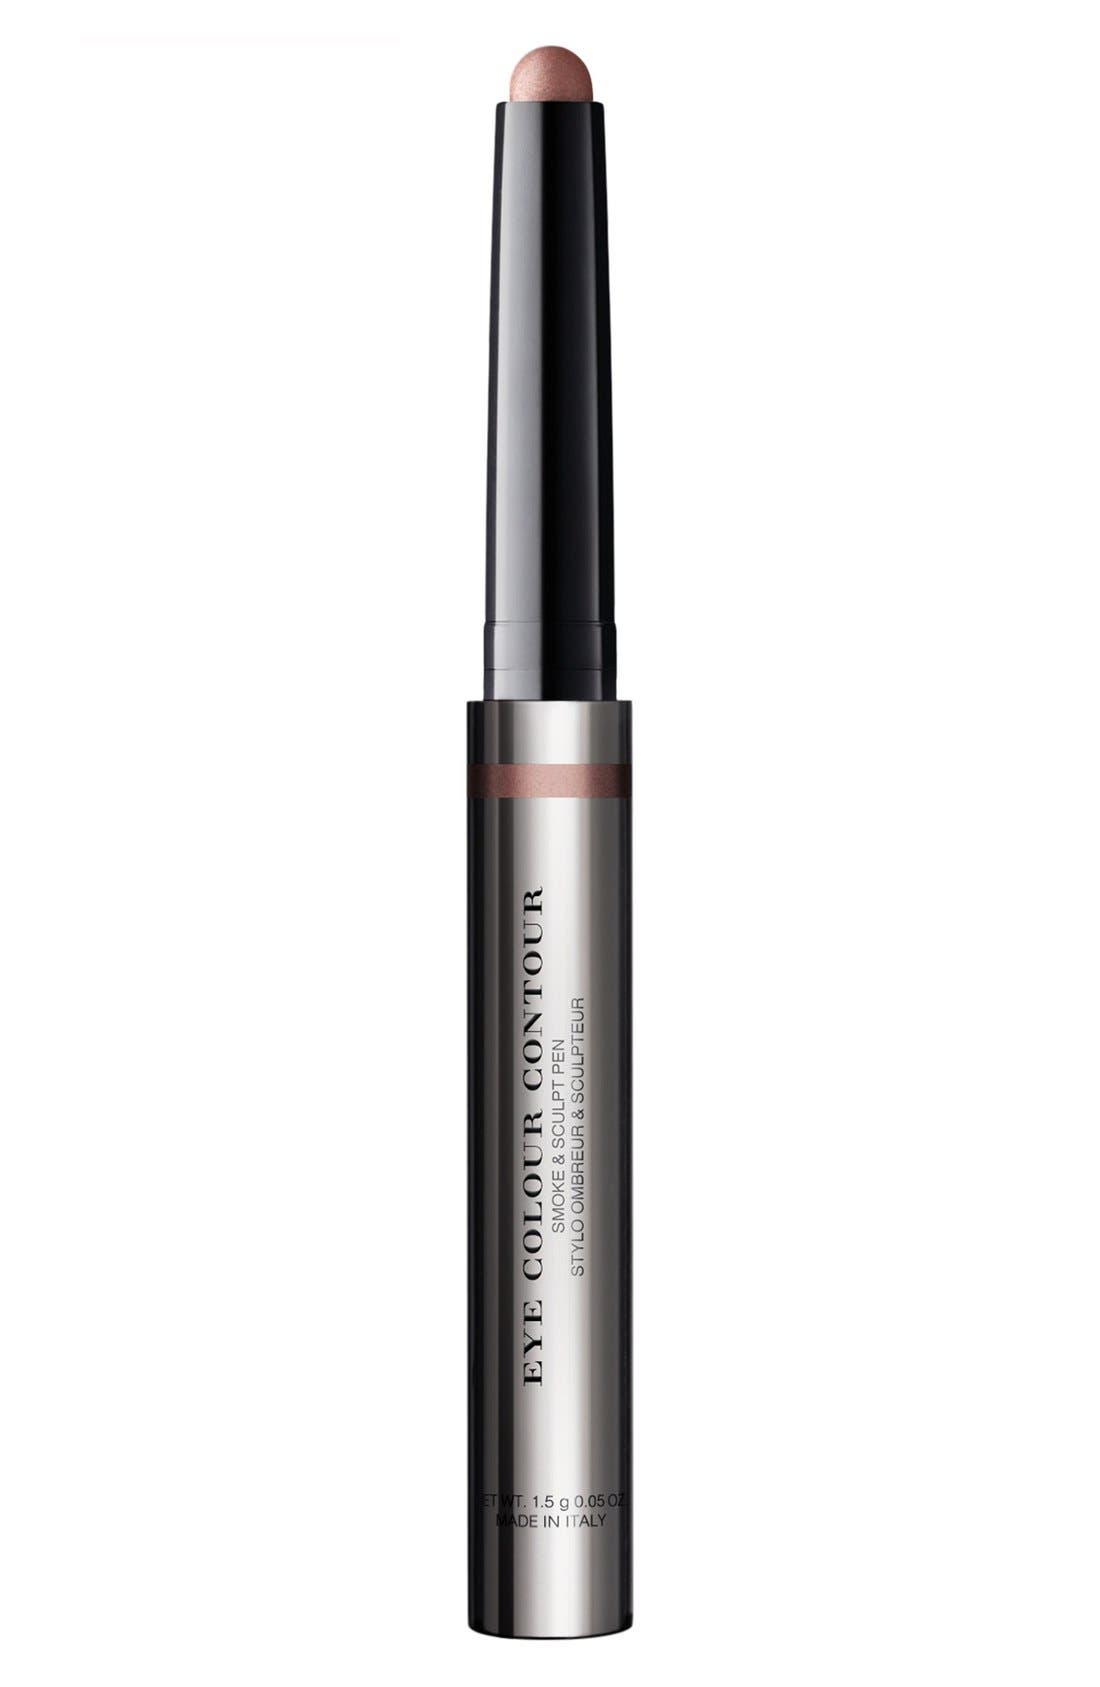 Burberry Beauty Eye Color Contour Smoke & Sculpt Pen